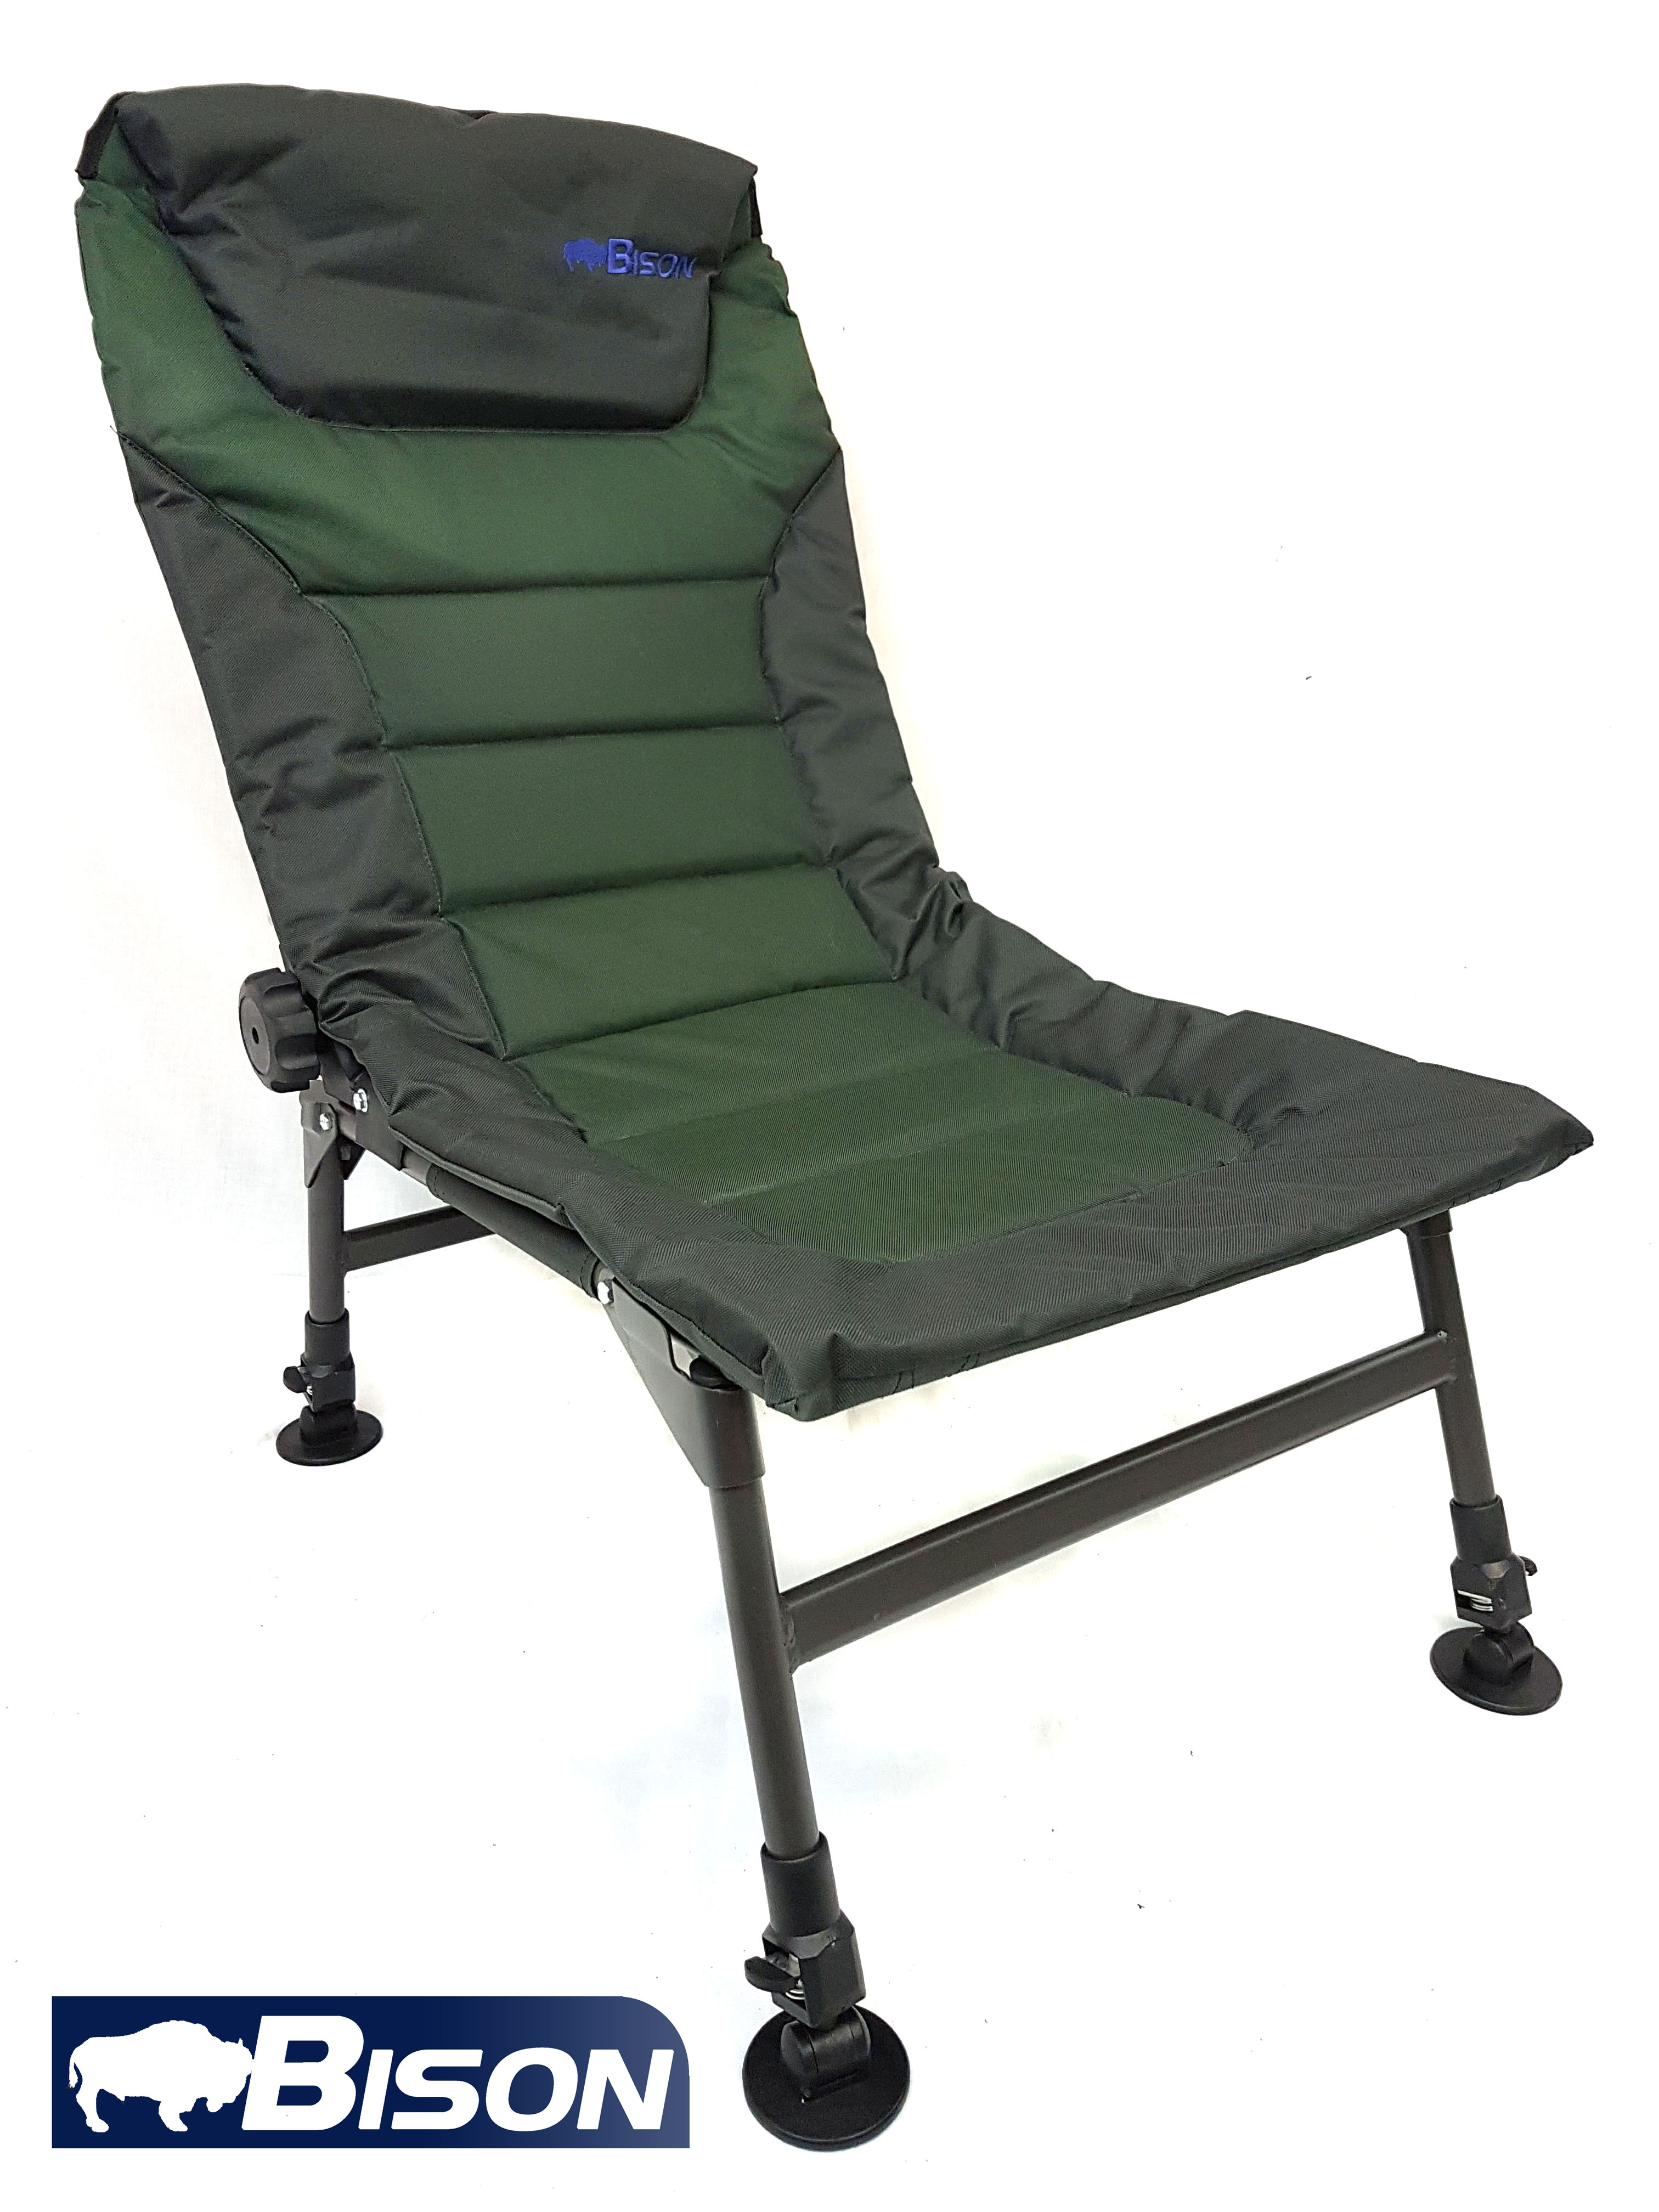 Bison Adjustable Legs And Back Recliner Fishing Carp Chair